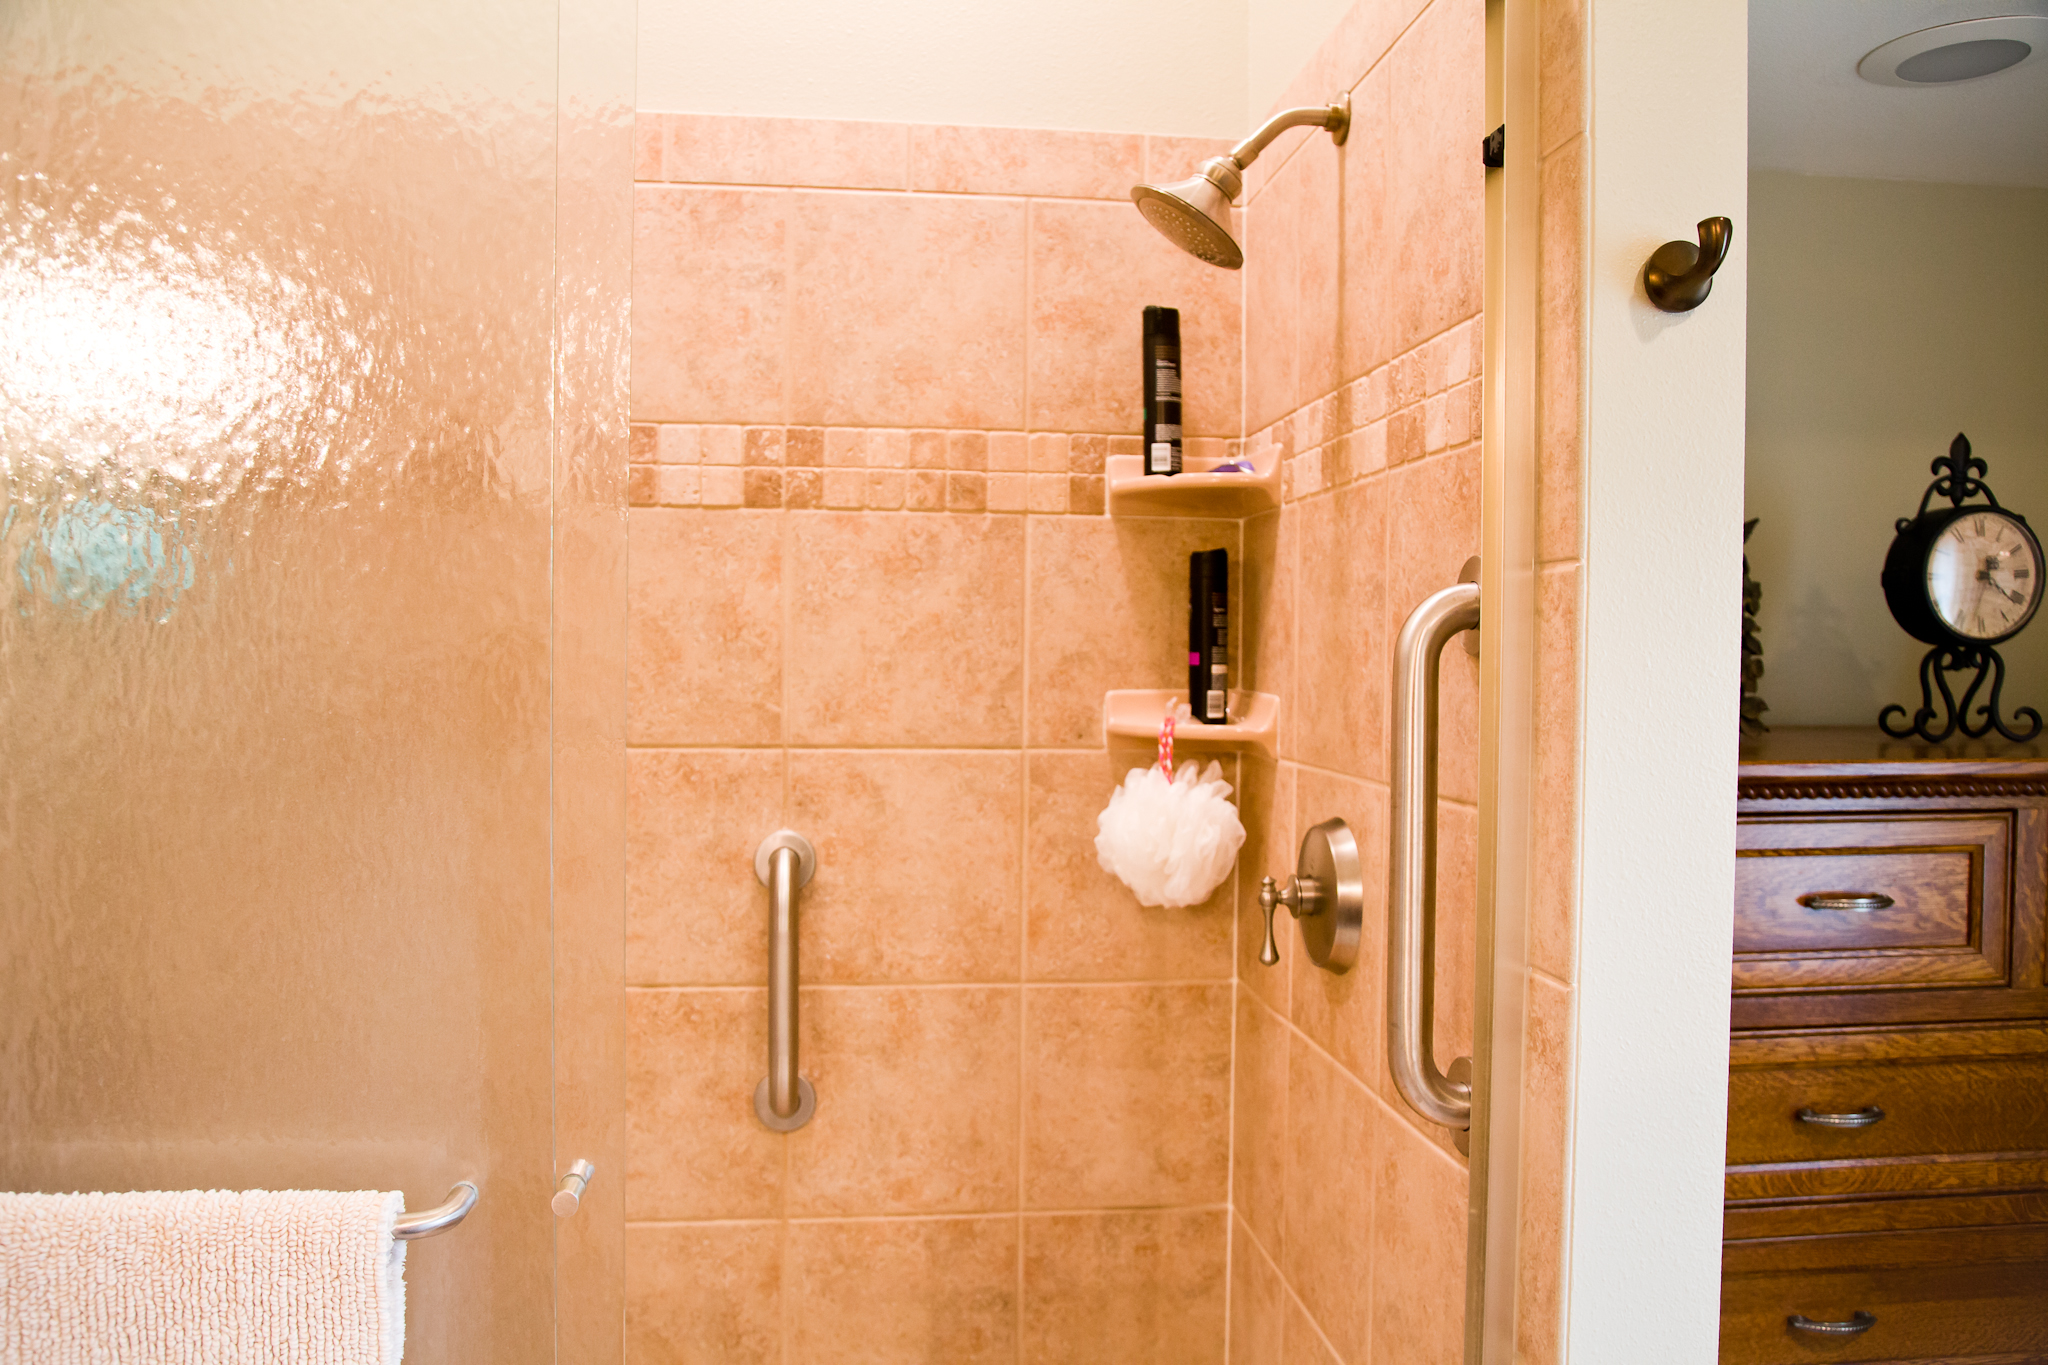 Shower Grab Bars | Grab Bars for Toilet | Smart Accessible Living